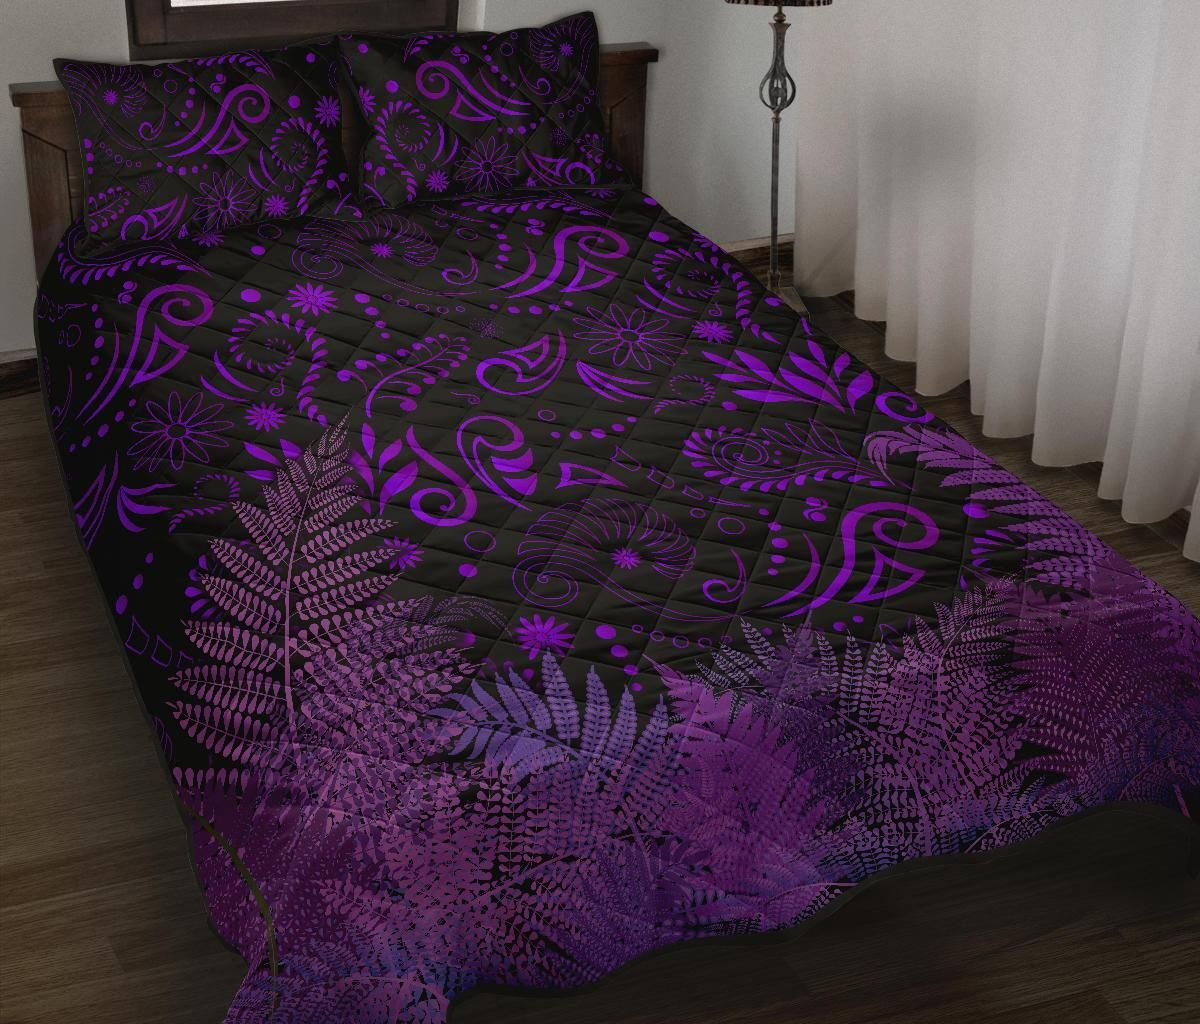 New Zealand Quilt Bed Set Silver Fern Aotearoa Vibes - Purple